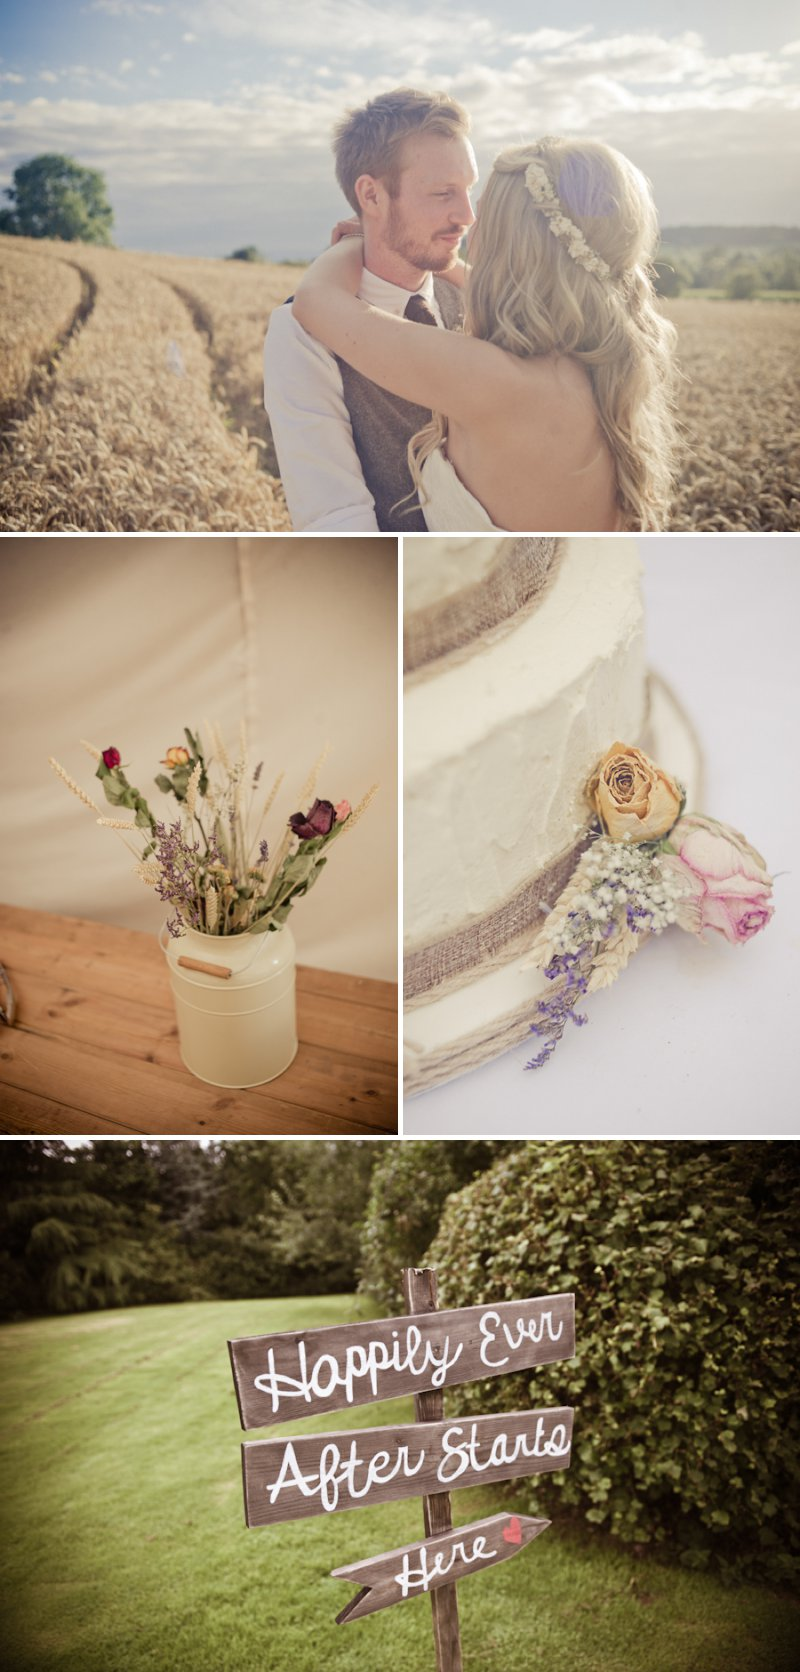 Rustic Wedding At Newton House In Derbyshire With Bride In Sophia Tolli Gown With A Dried Flower Headpiece From The Artisan Dried Flower Co And Groom In Tweed Waistcoat With Images From Jake Morley 1 A Once In A Lifetime Love.